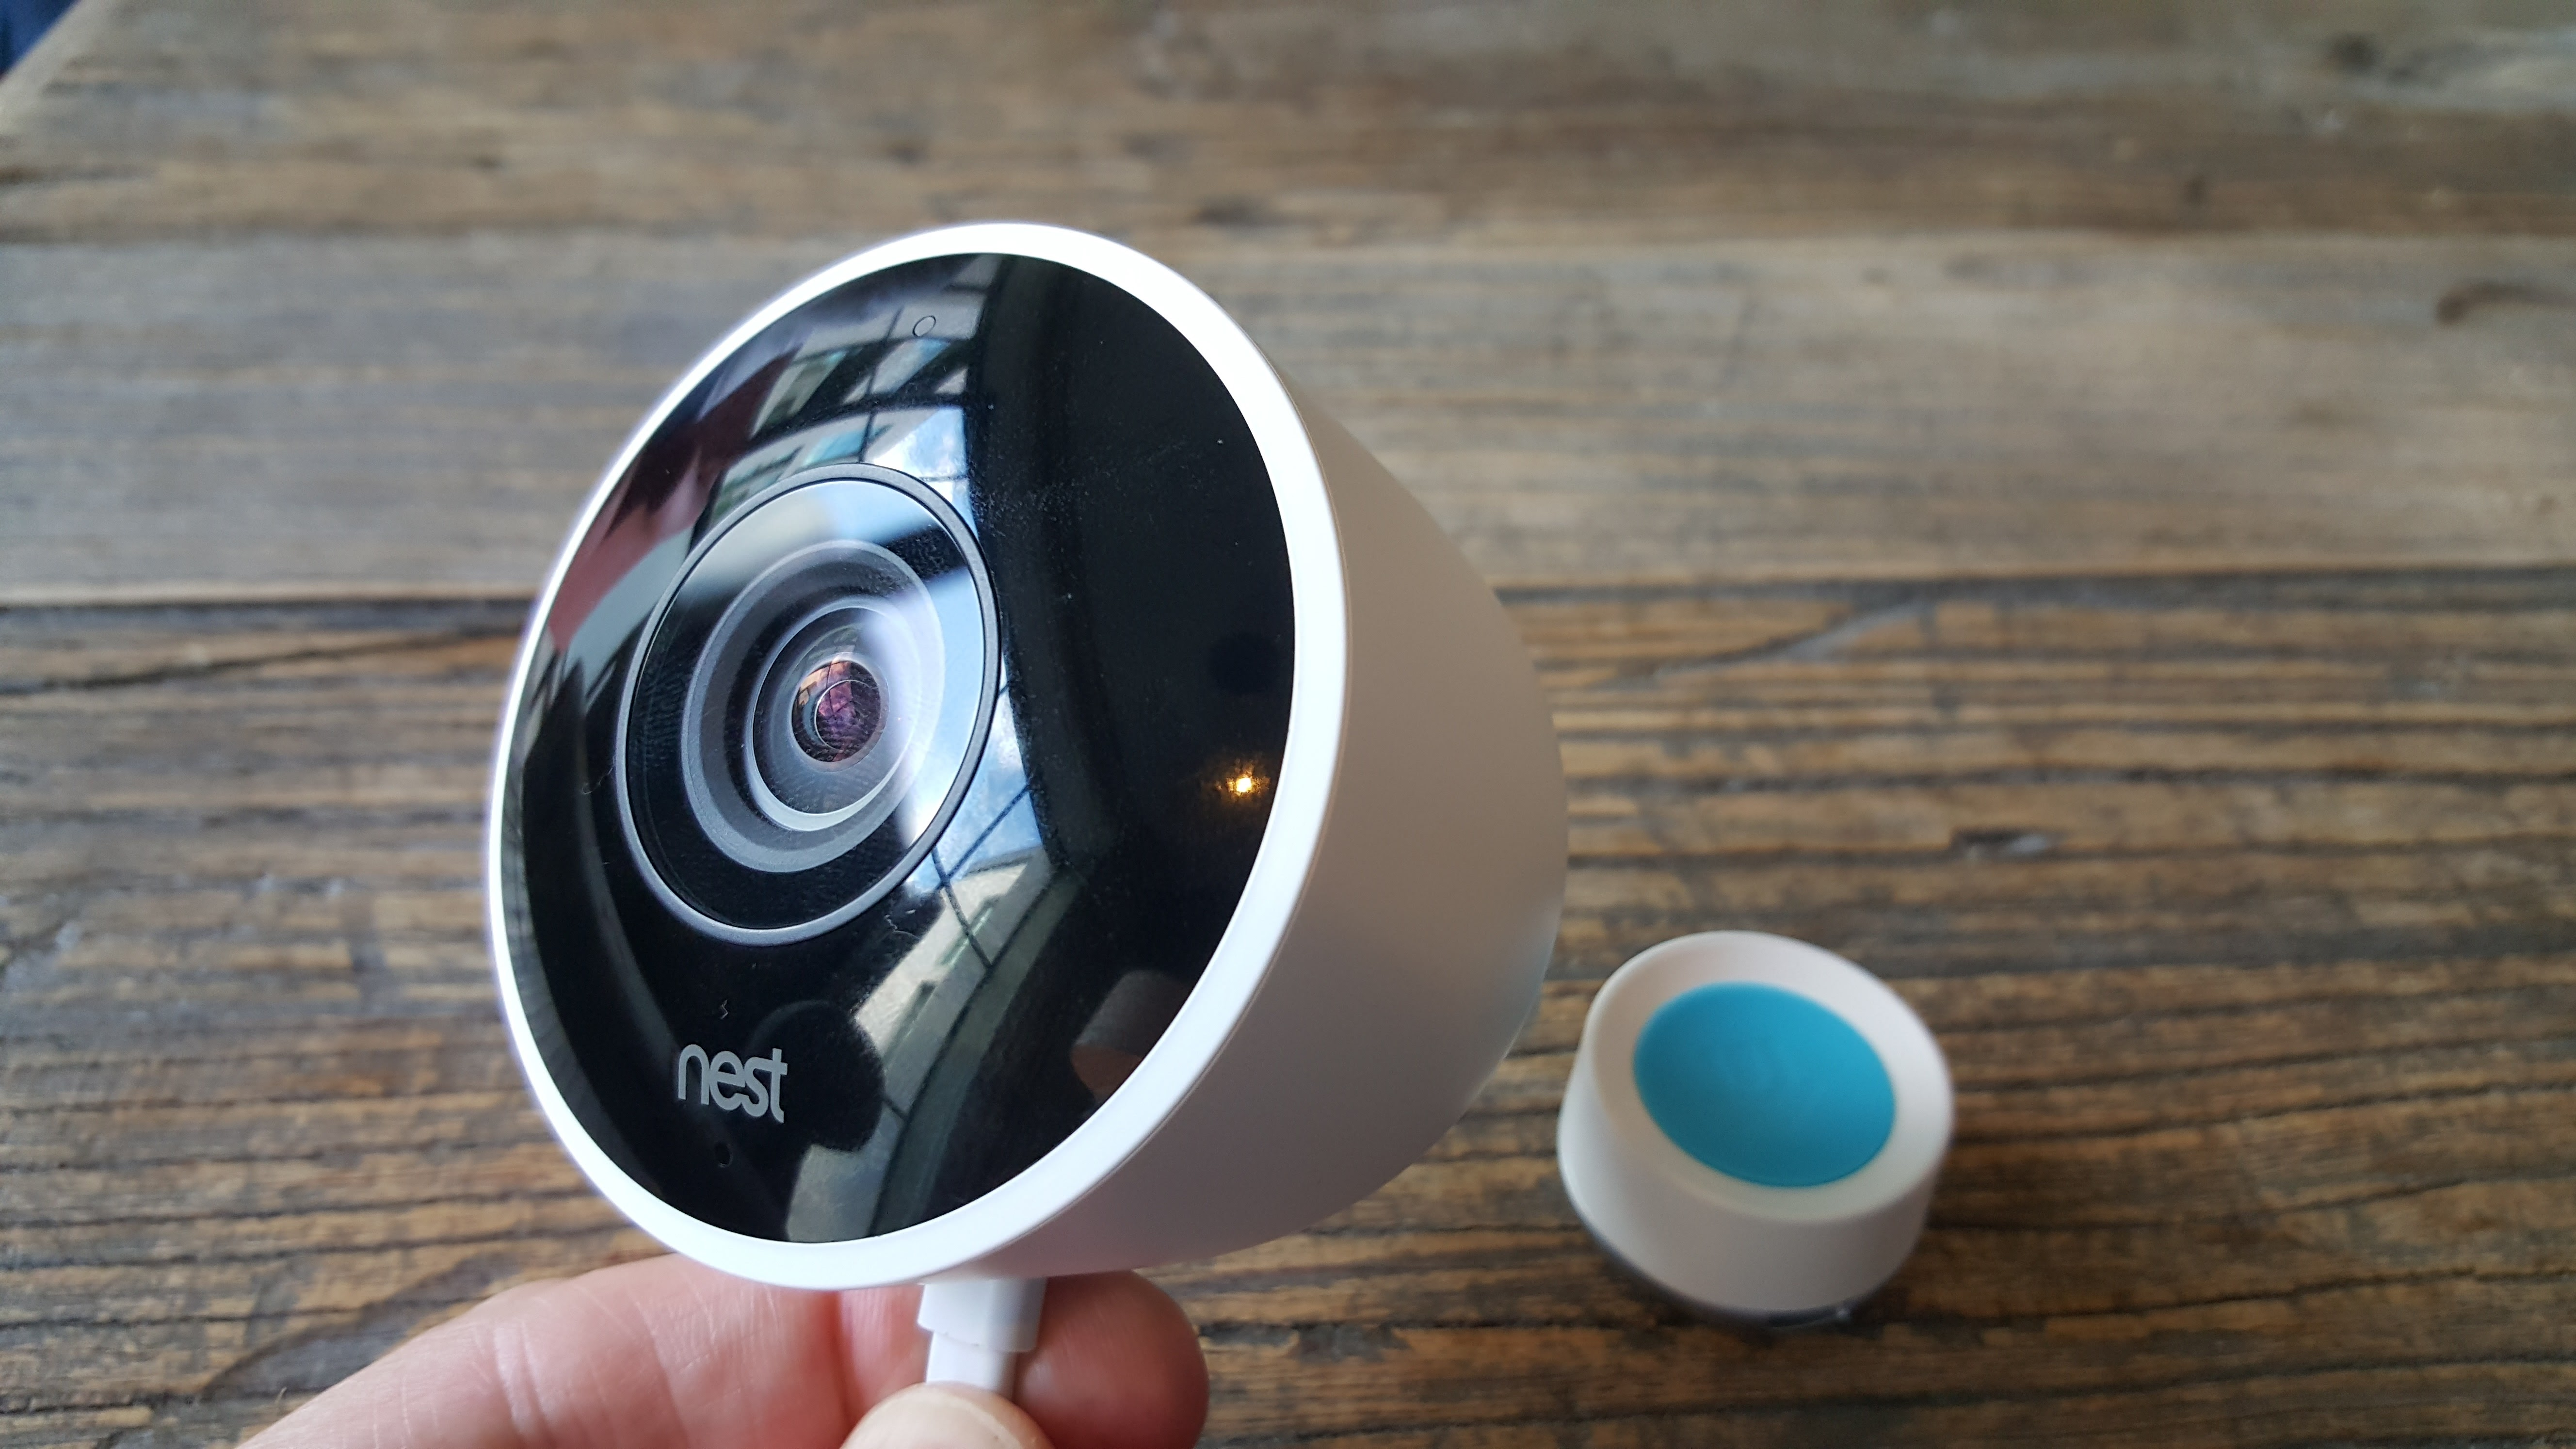 nest cam outdoor review hands on chat with delivery. Black Bedroom Furniture Sets. Home Design Ideas